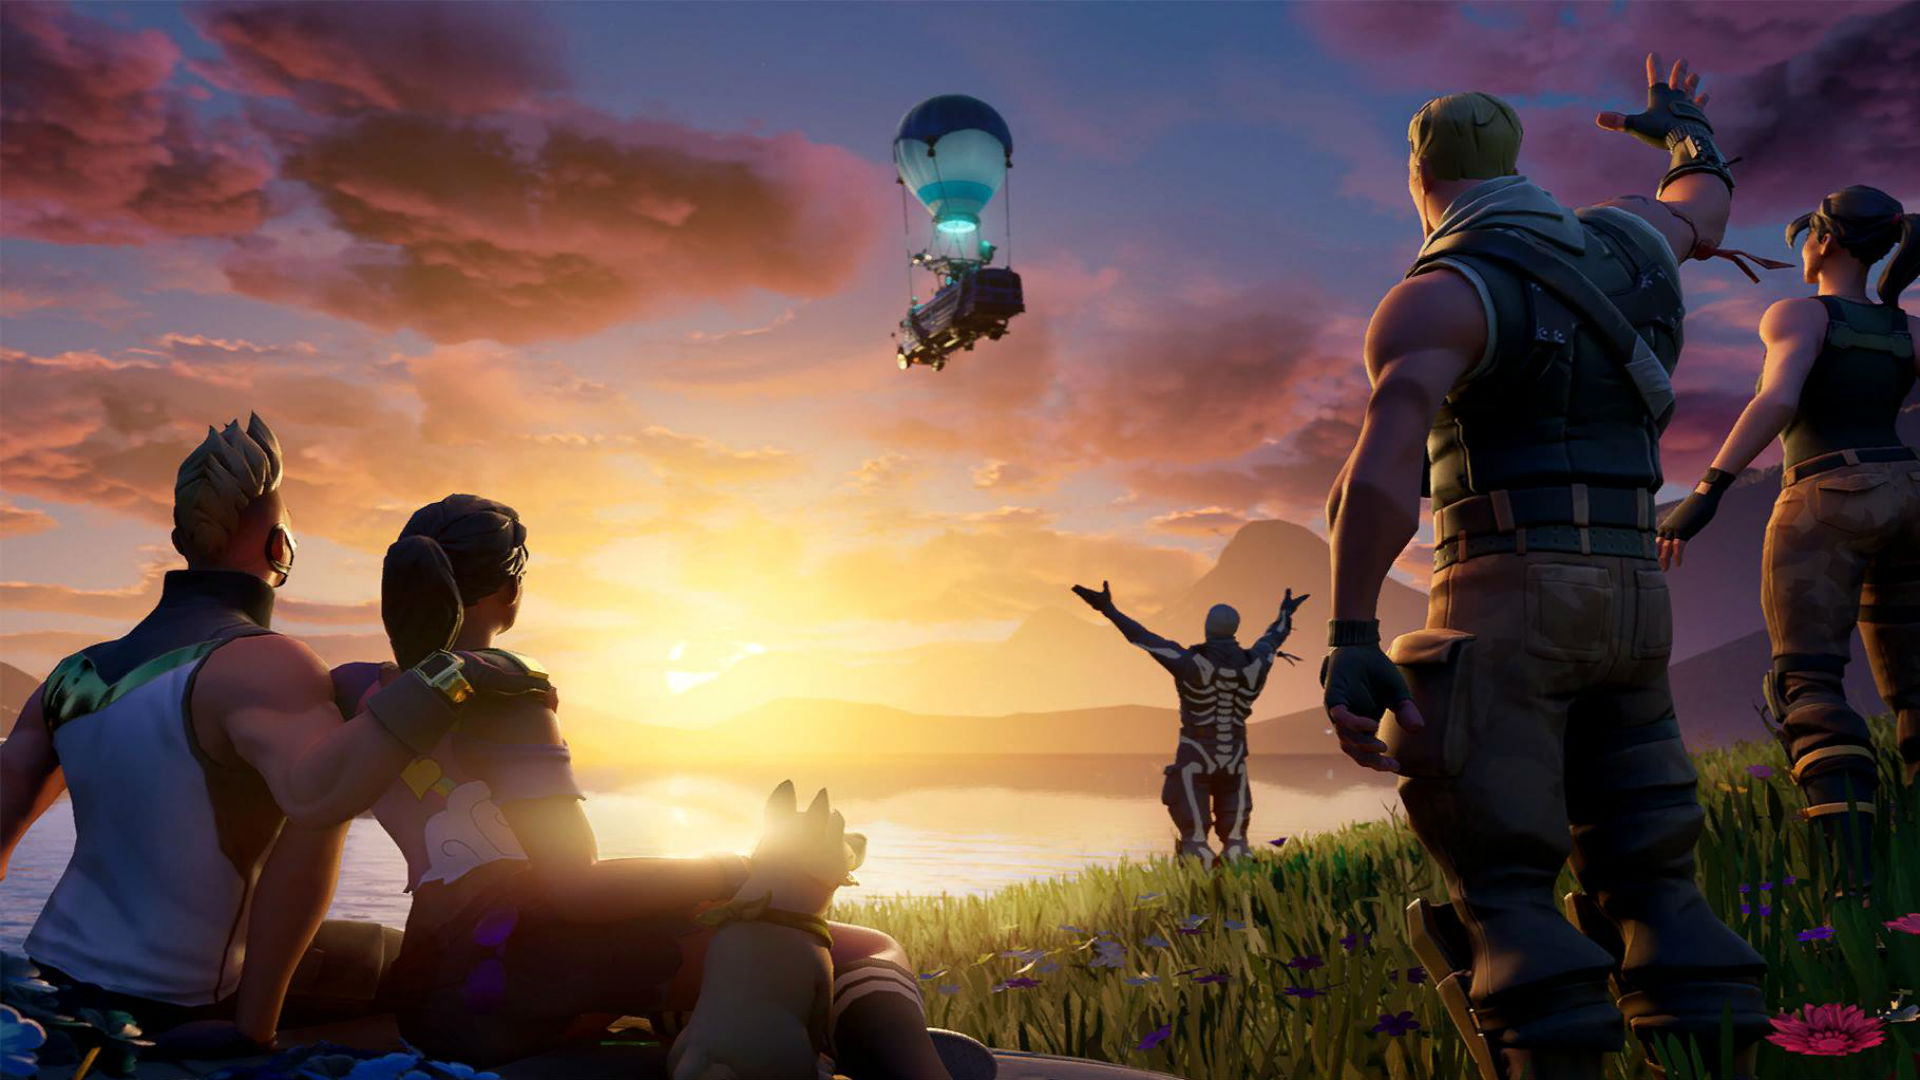 How to watch The End event in Fortnite